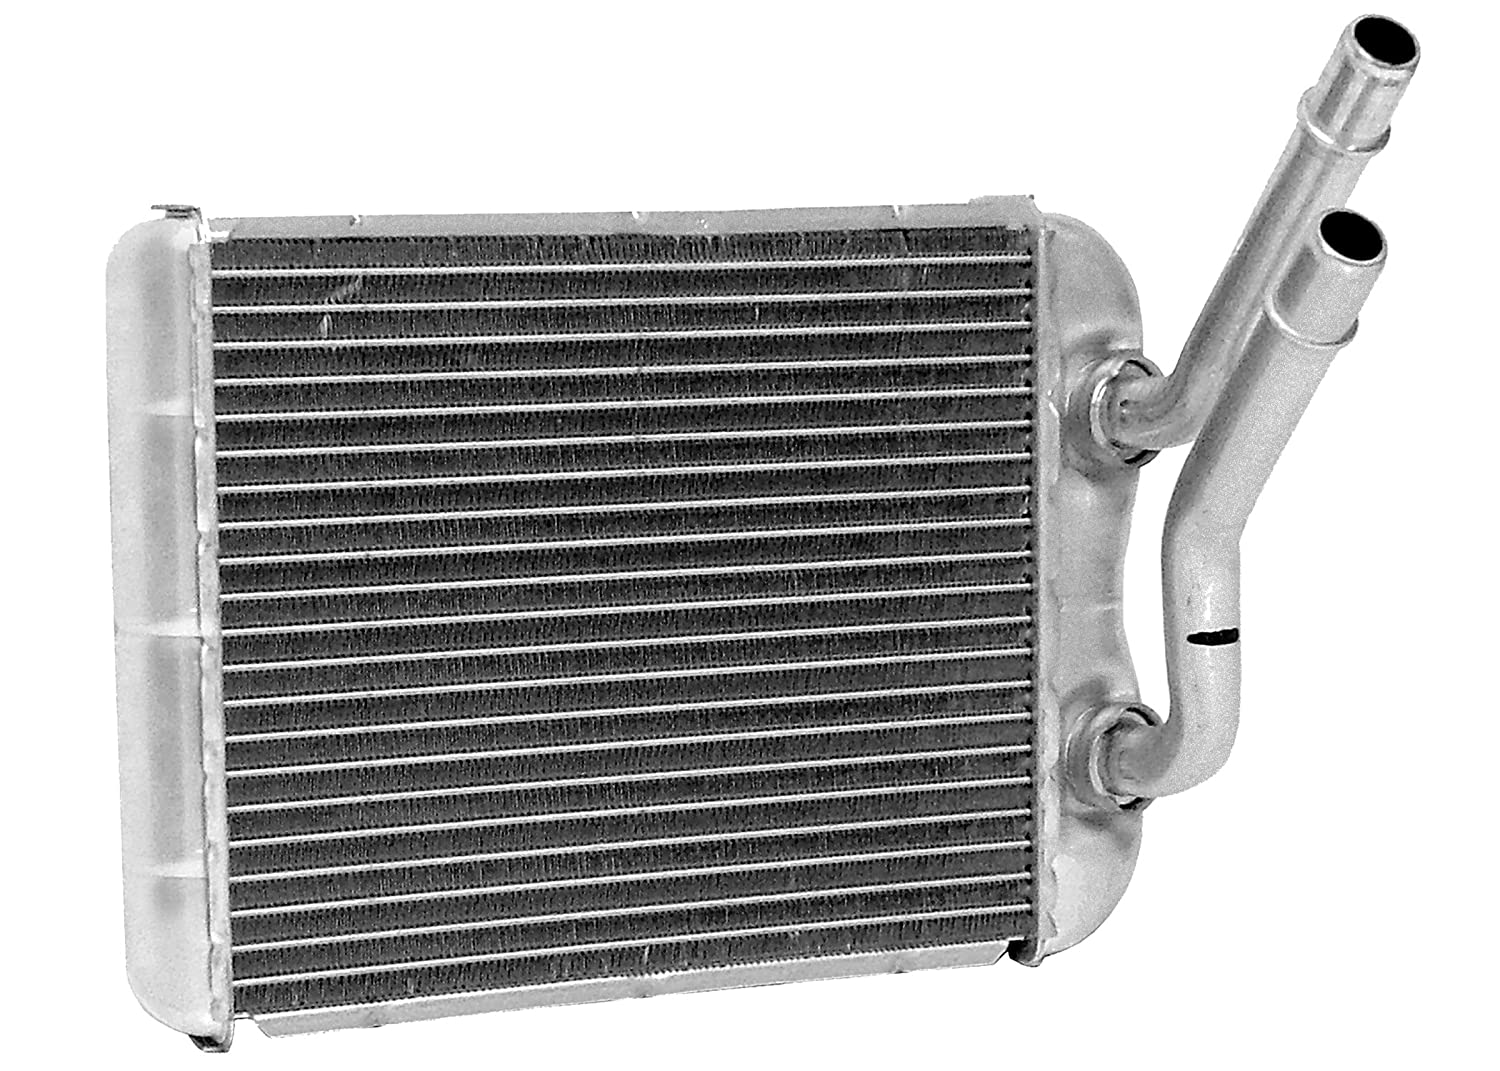 Amazon.com: ACDelco 15-62960 GM Original Equipment Heater Core: Automotive